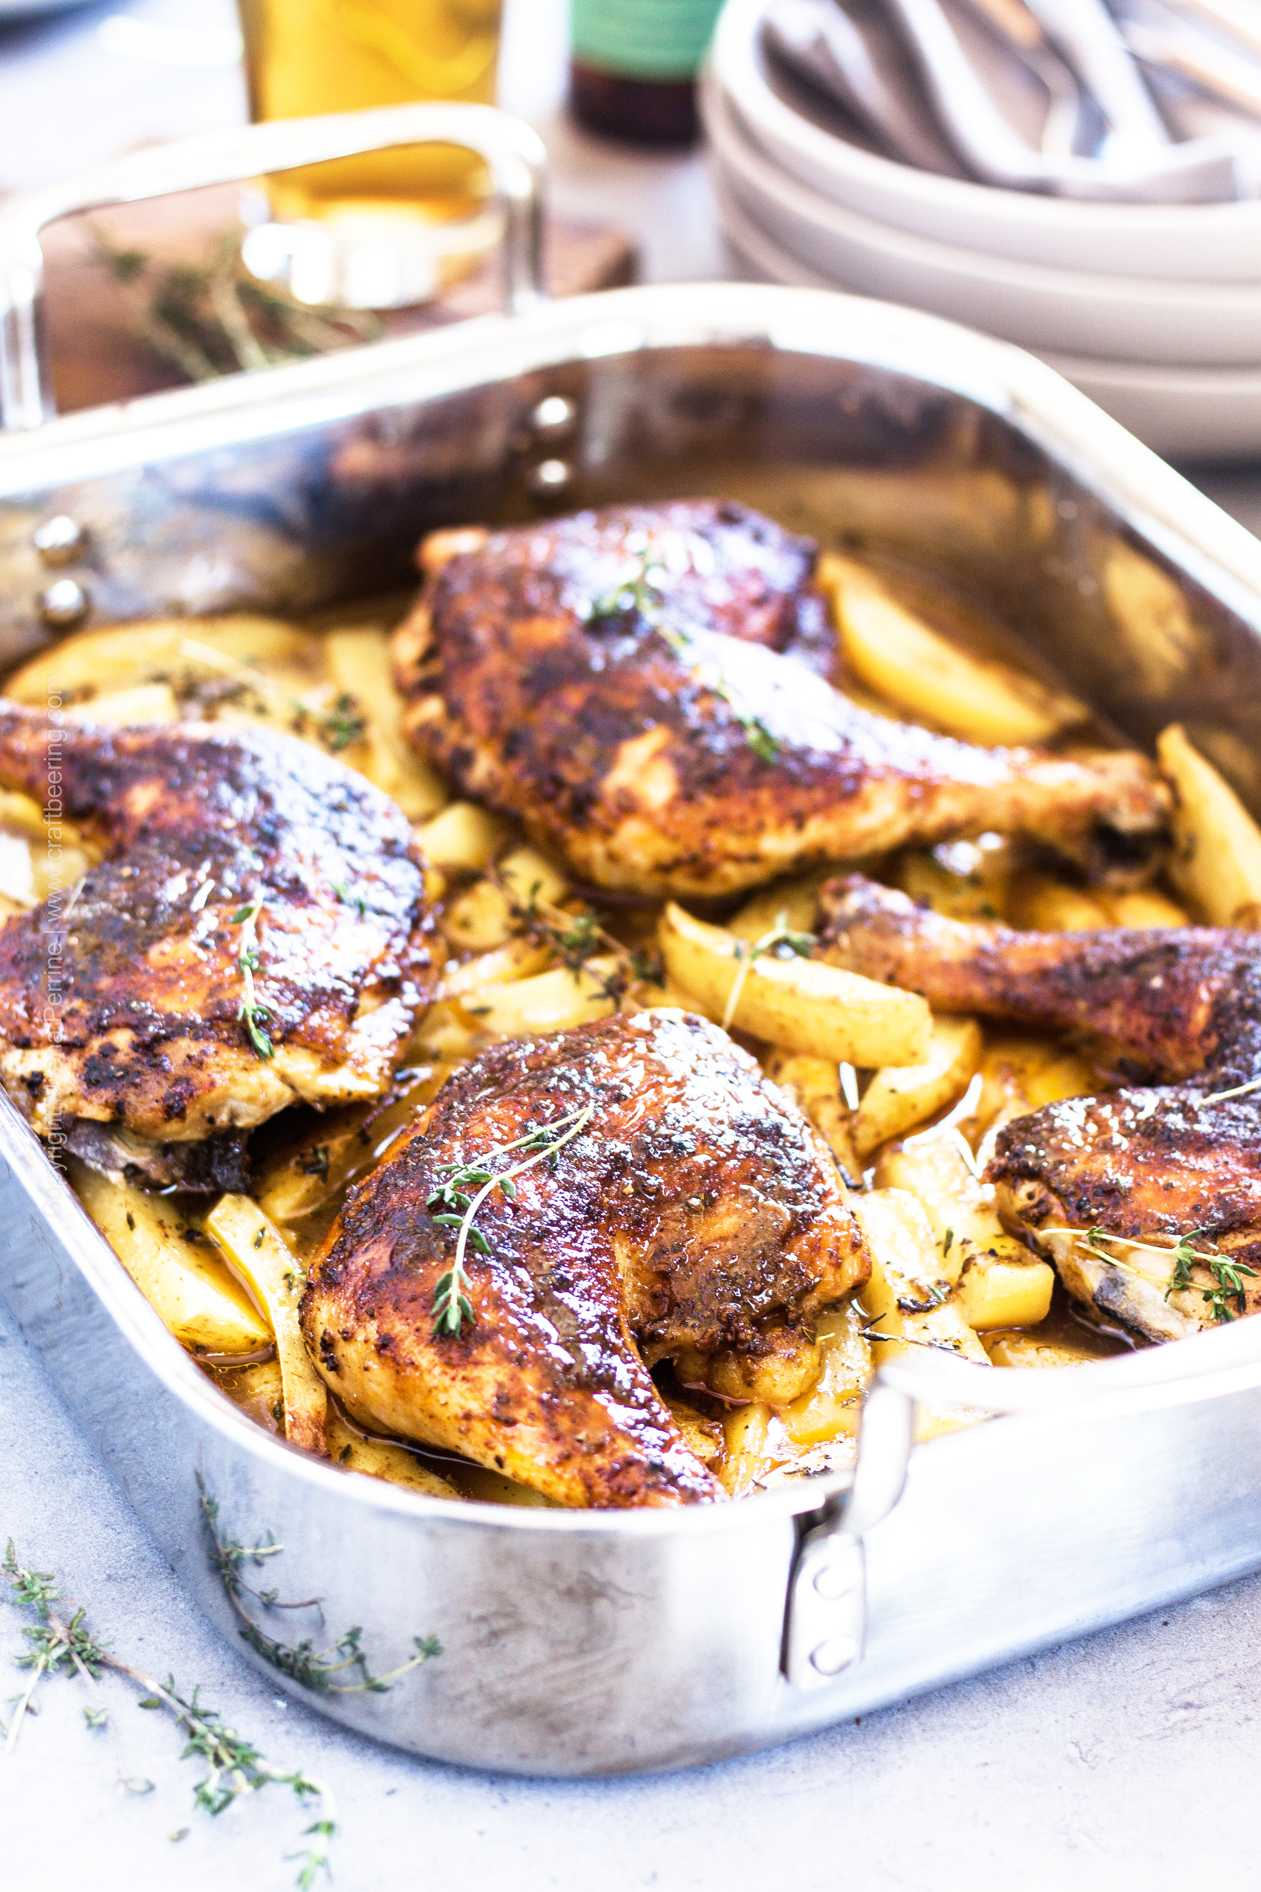 Beer chicken in oven with potatoes.